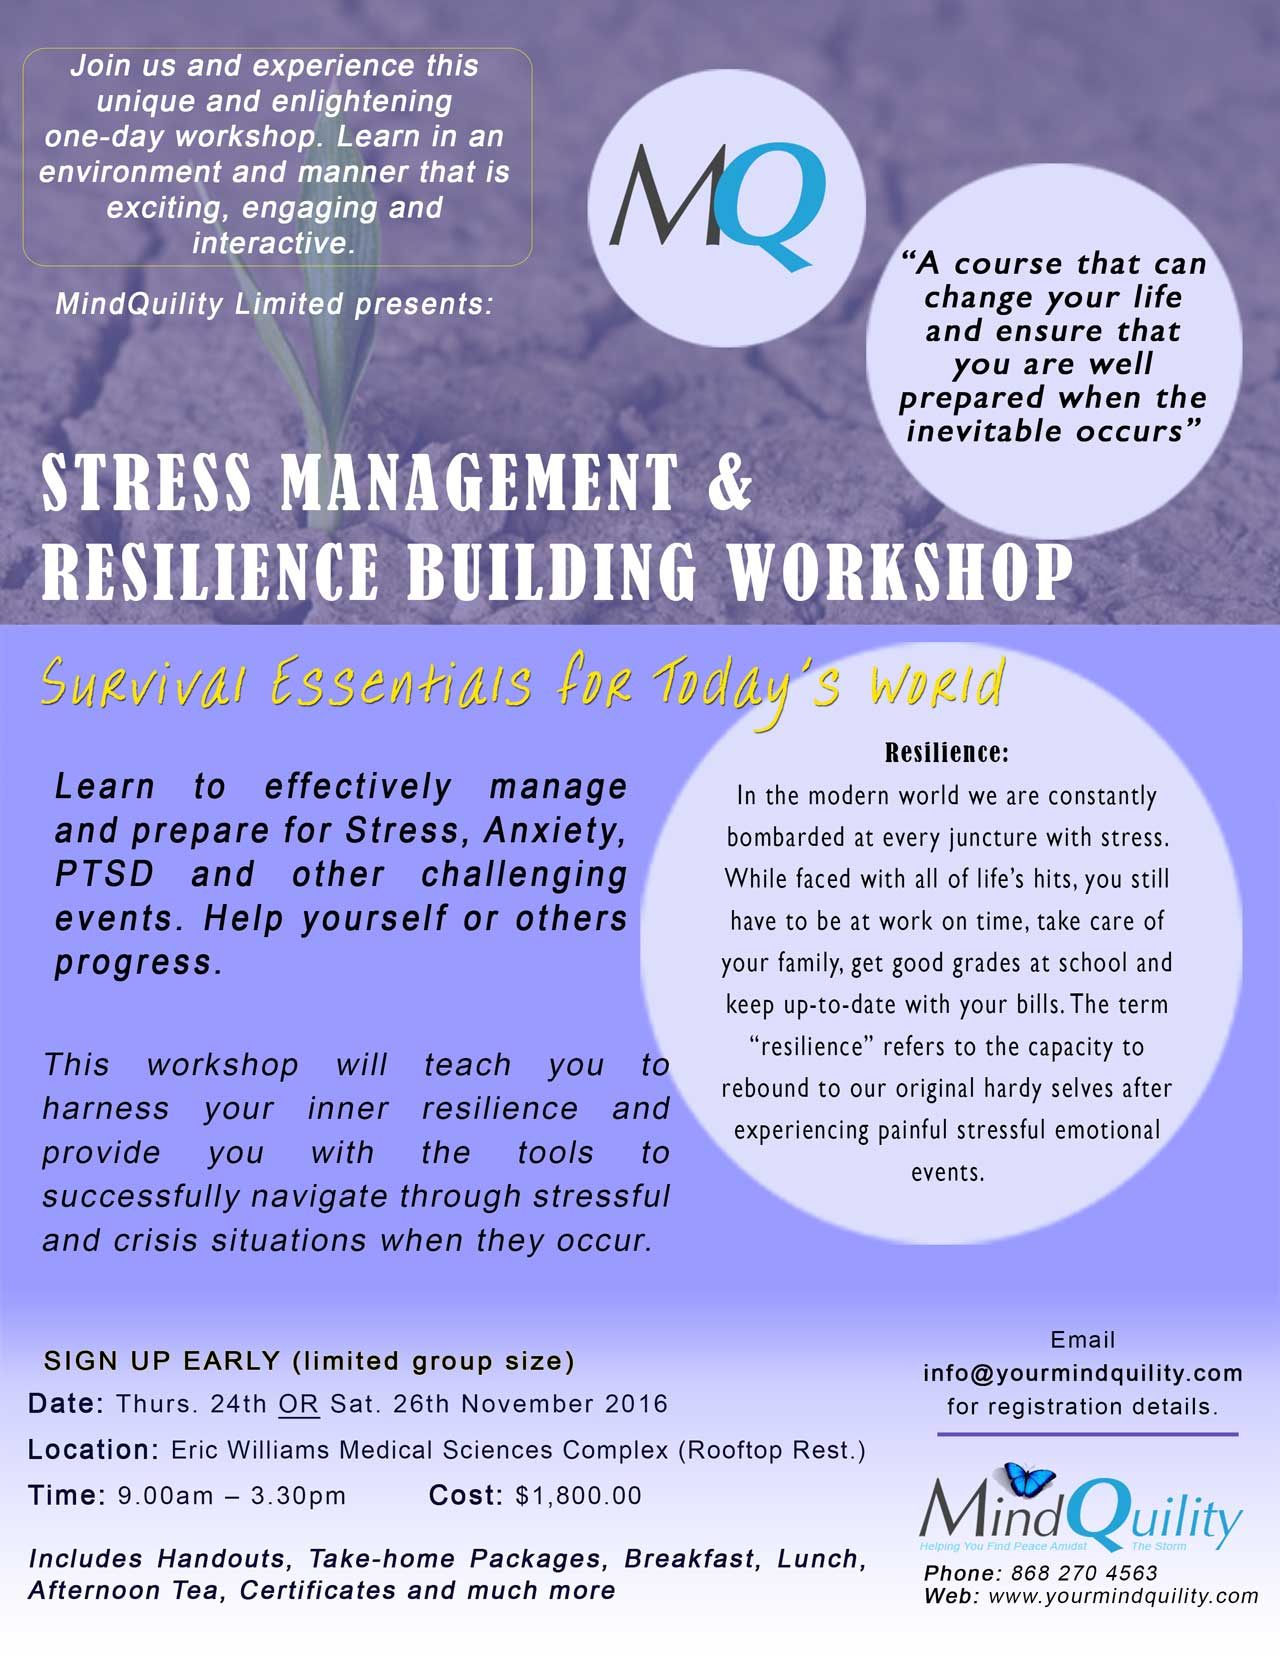 Stress Management & Resilience Building Workshop